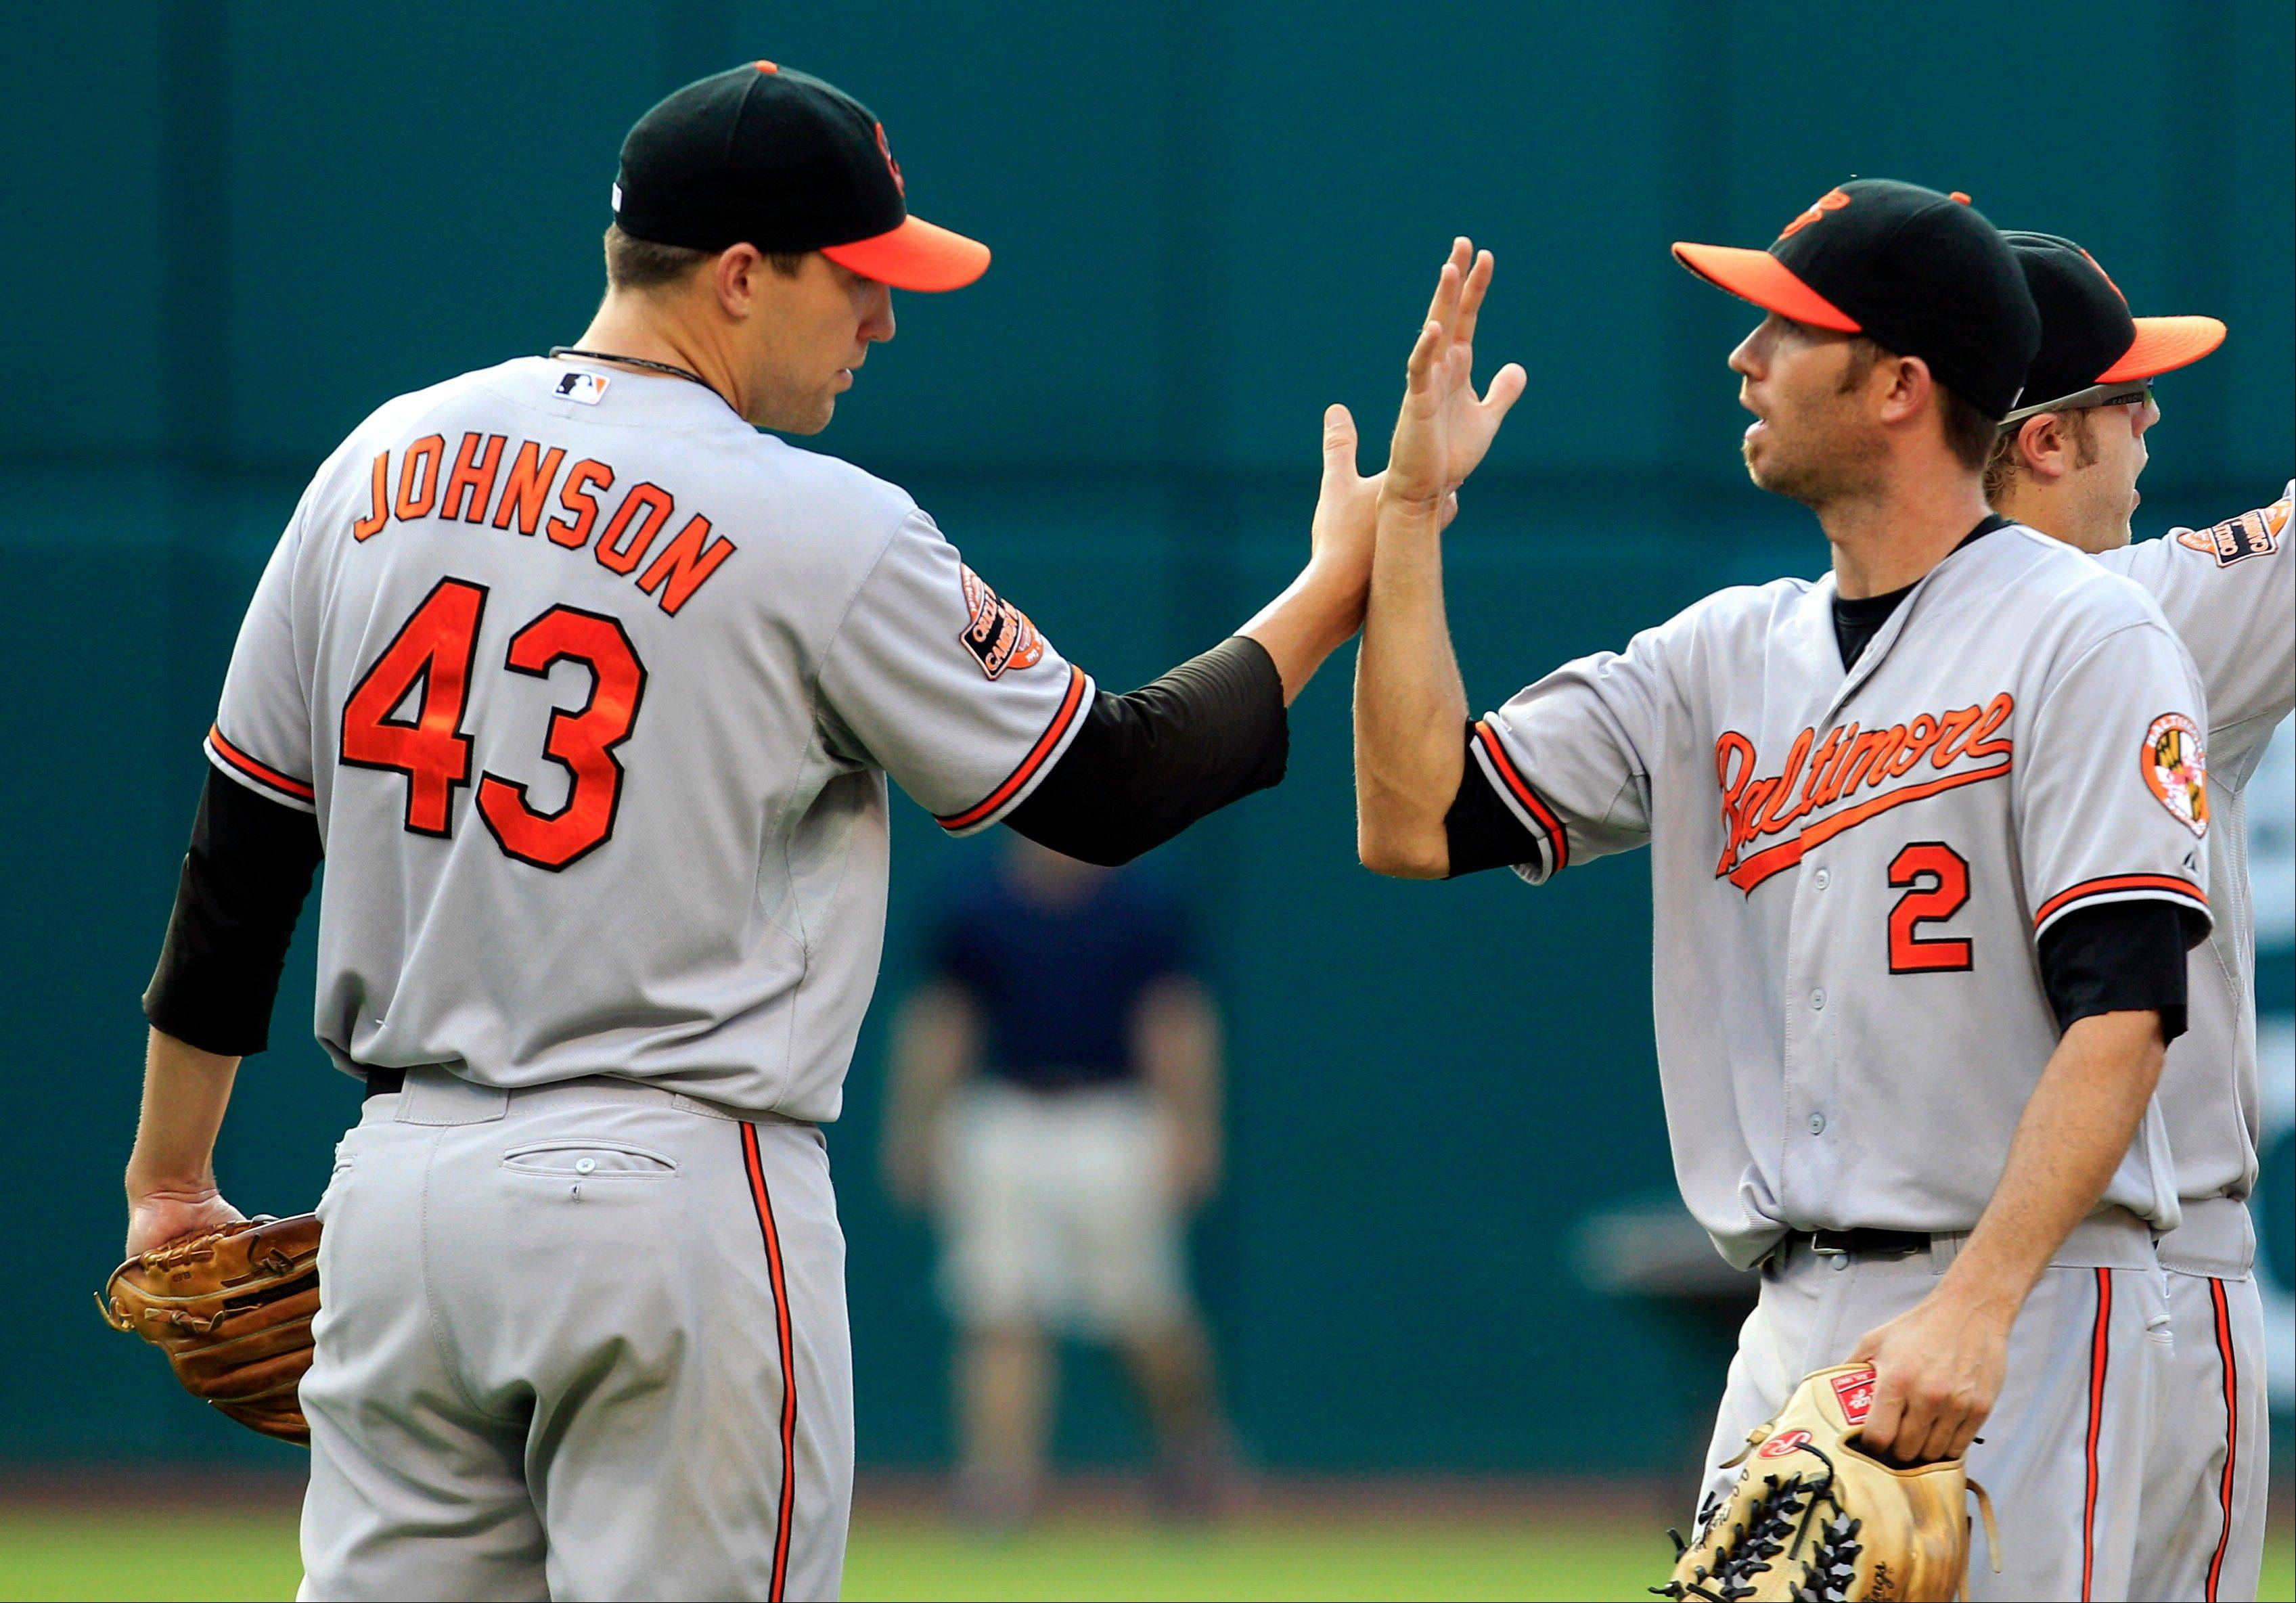 Baltimore closer Jim Johnson, left, congratulates J.J. Hardy after the Orioles defeated the Indians 4-3 Sunday in Cleveland.